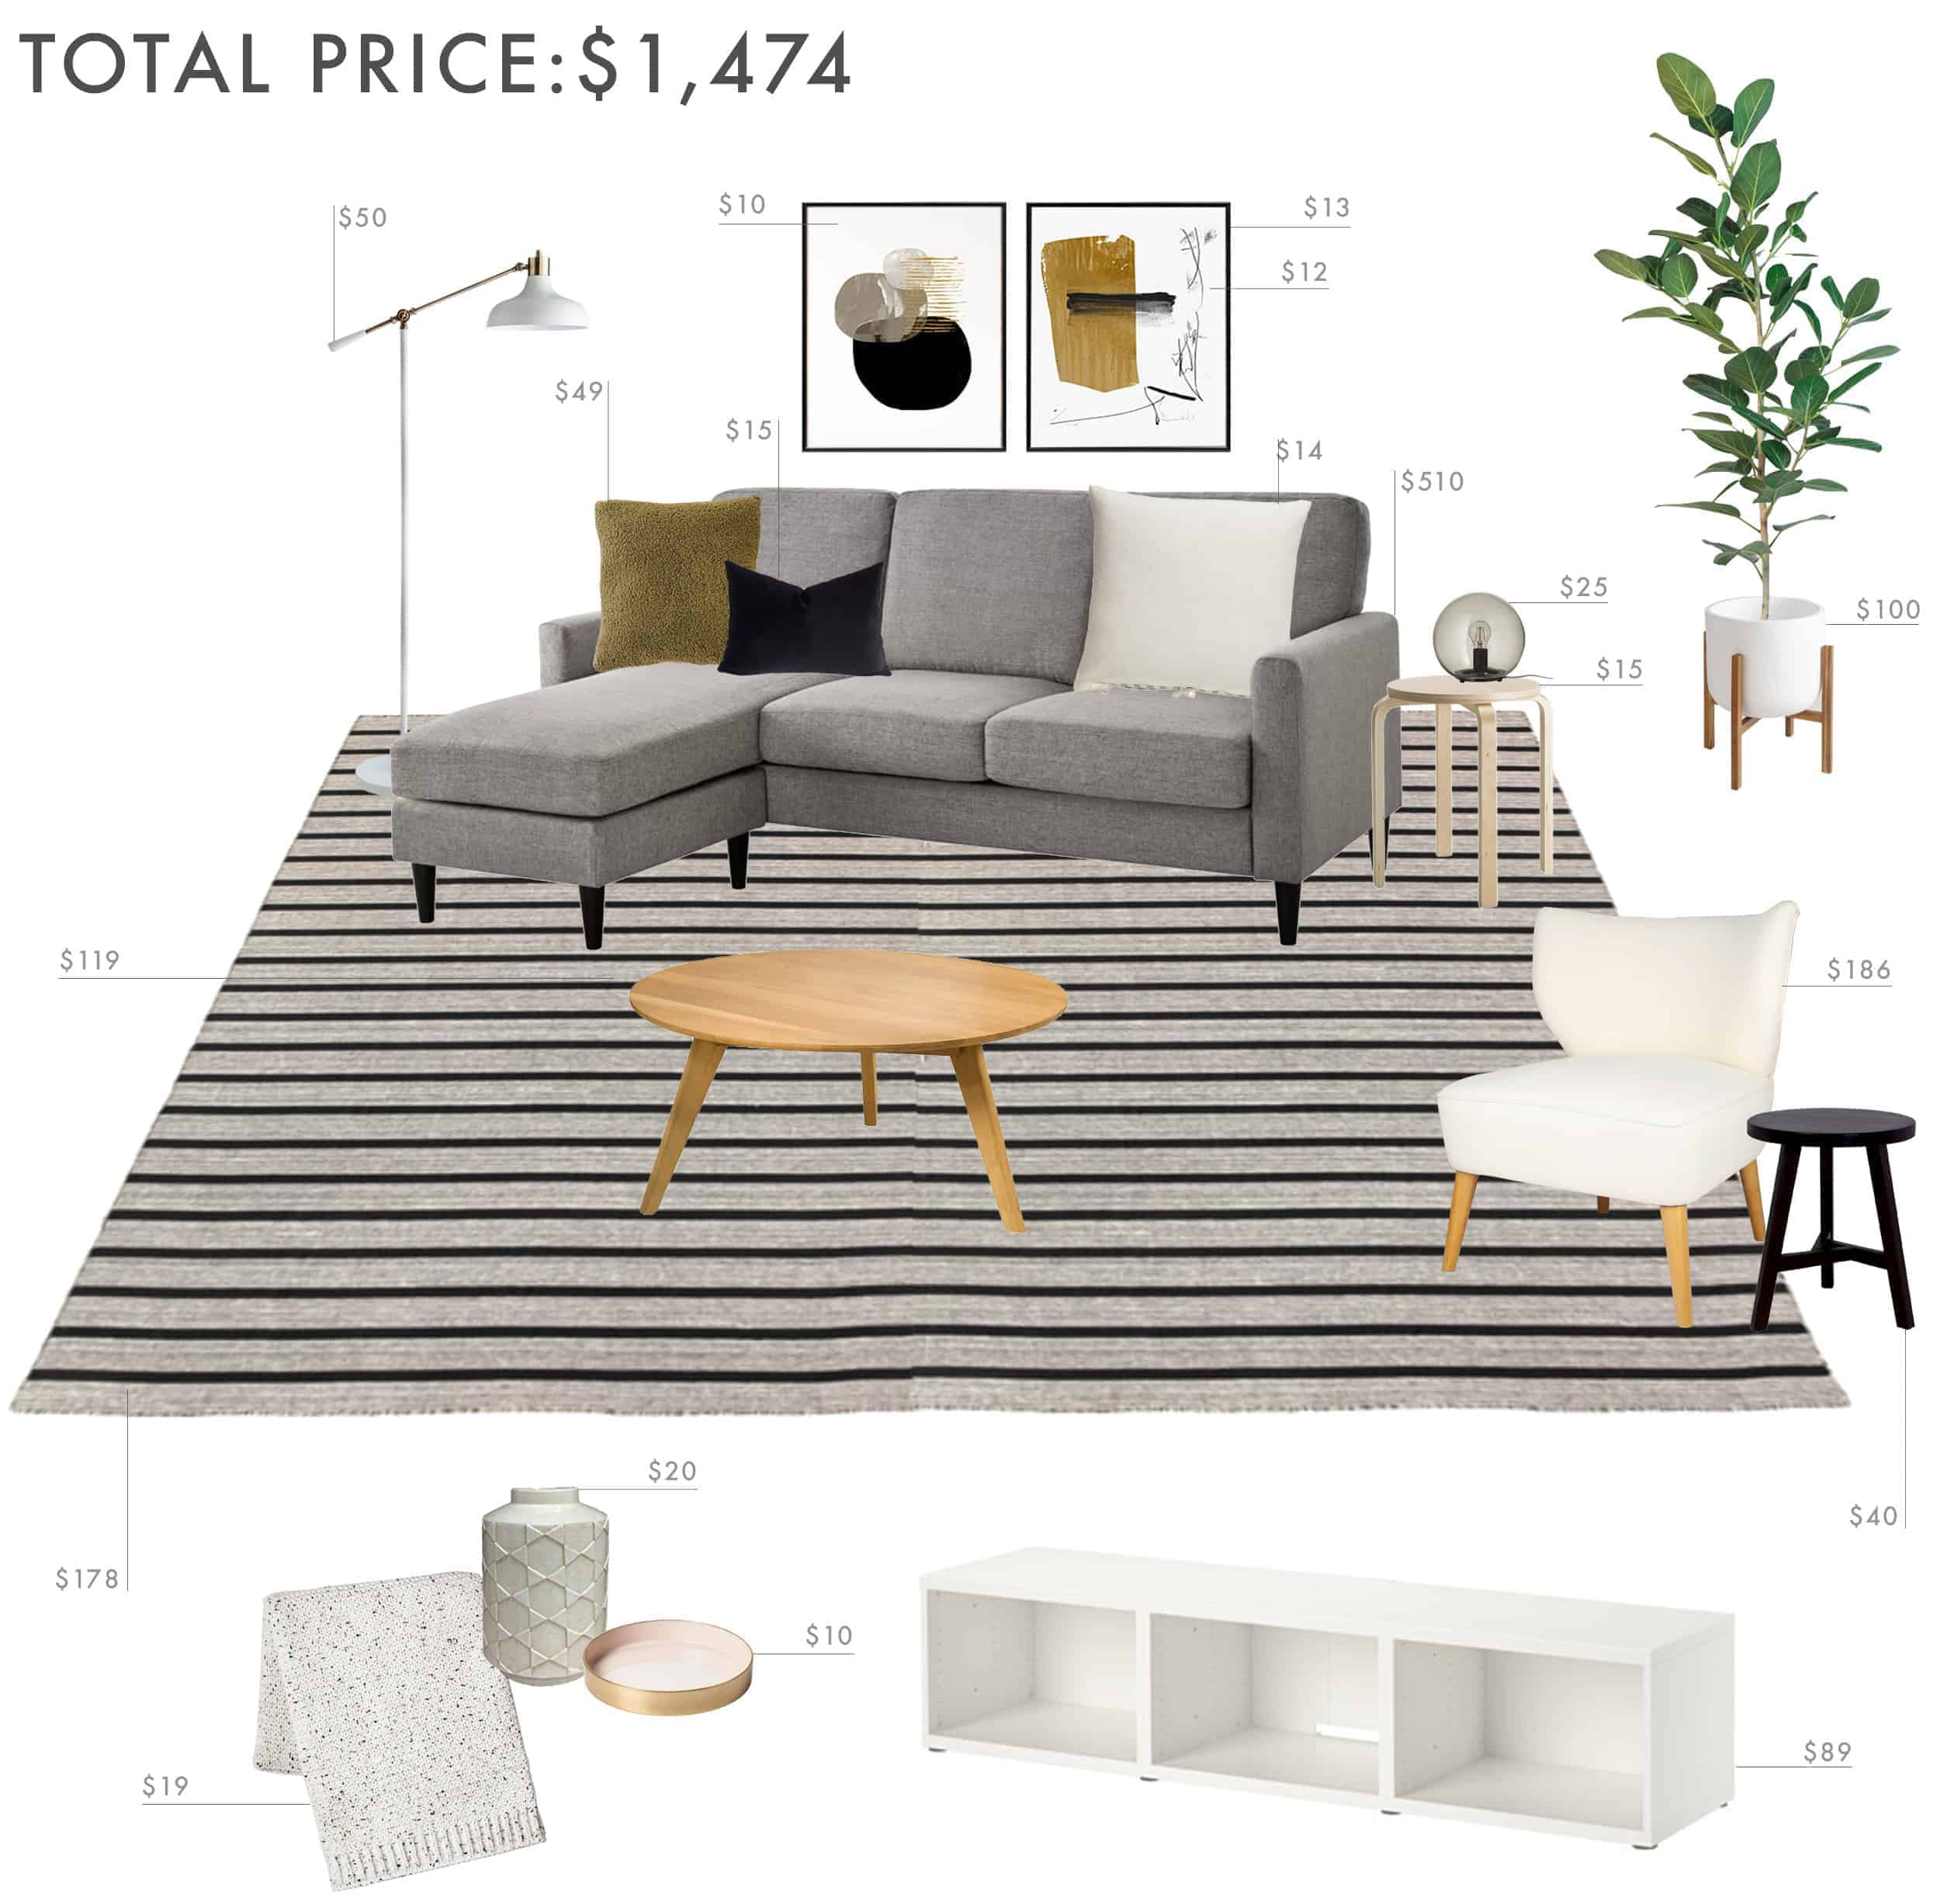 Emily Henderson Budget Room Living Room Sectional Neutral 1500 Final